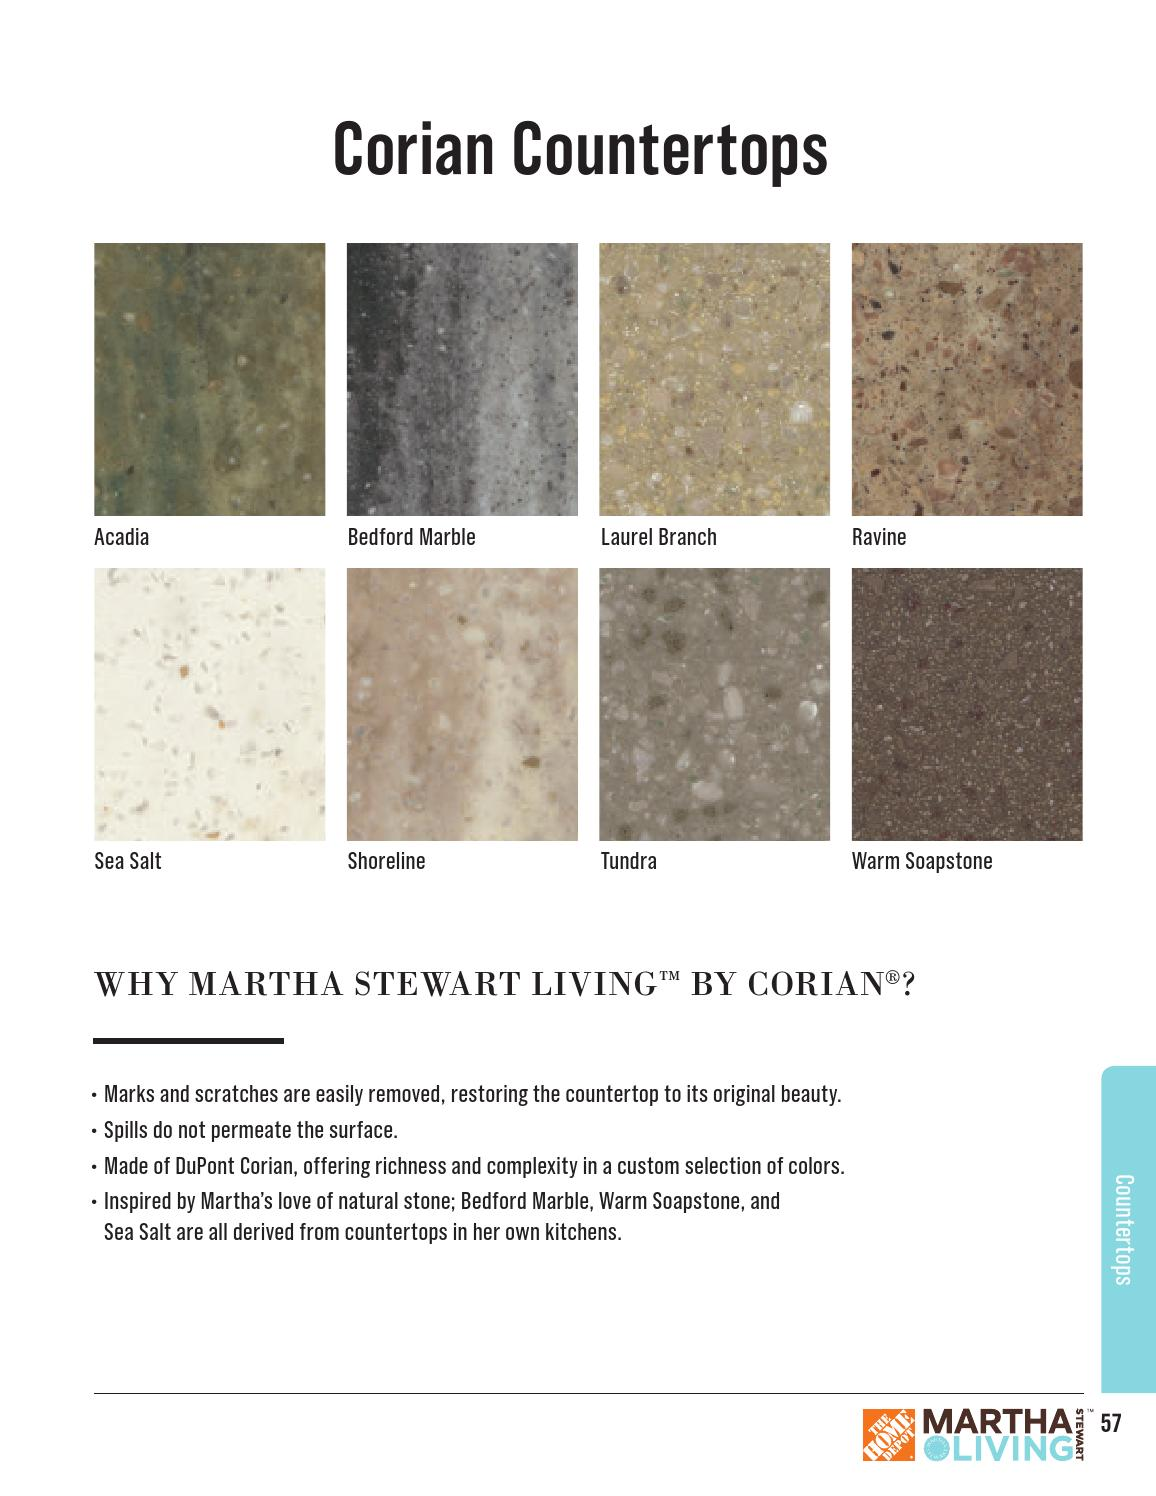 Colors Of Corian Countertops Marth Stewart Living Full Line April 2015 By Martha